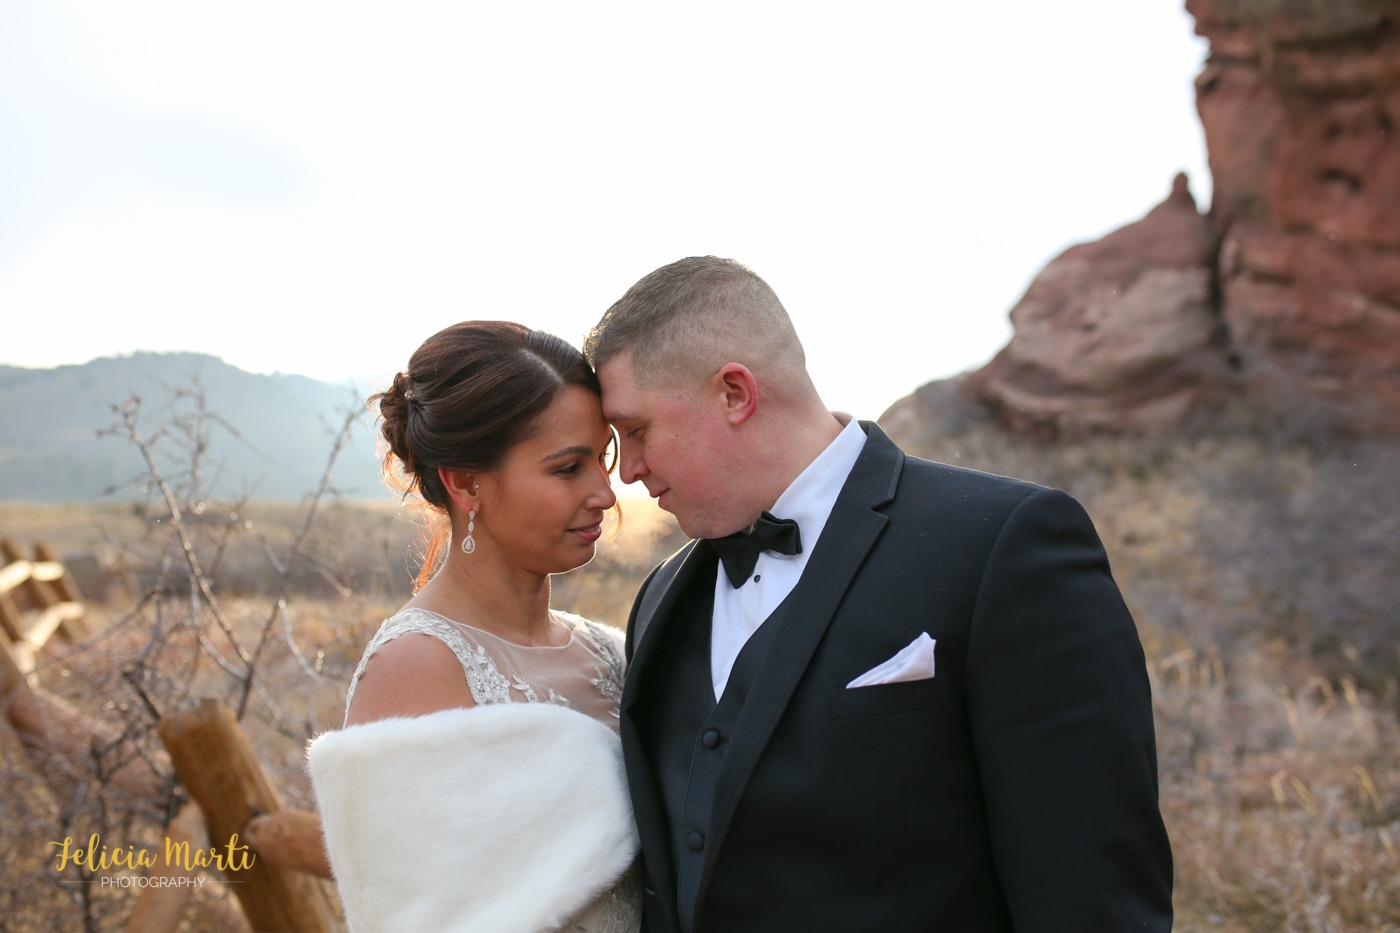 Winter Elopement | A private and beautiful wedding in Red Rocks, Colorado